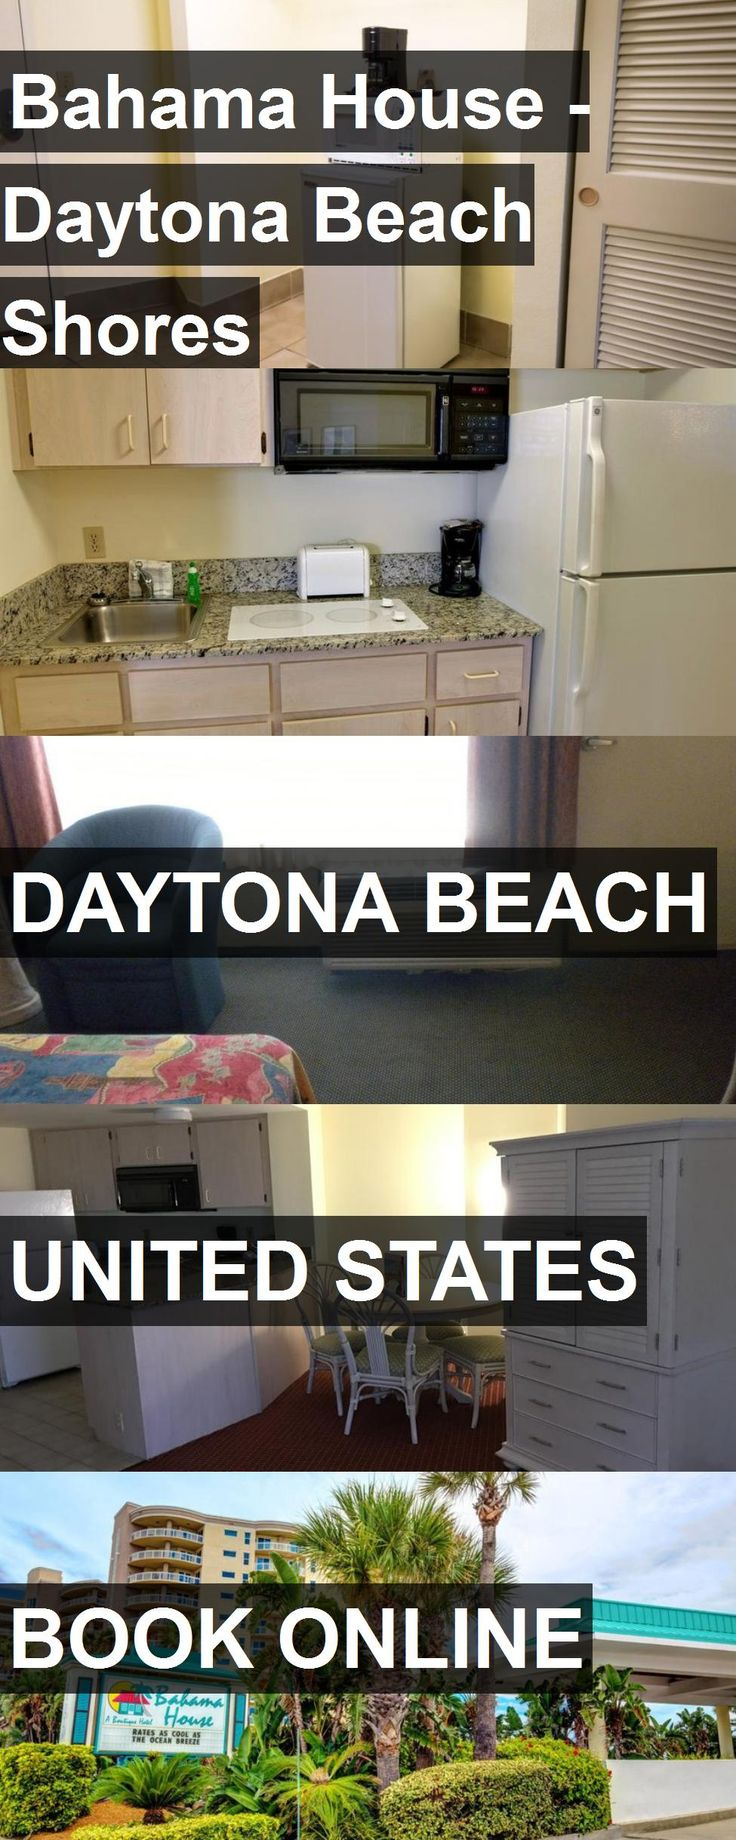 Hotel Bahama House - Daytona Beach Shores in Daytona Beach, United States. For more information, photos, reviews and best prices please follow the link. #UnitedStates #DaytonaBeach #travel #vacation #hotel